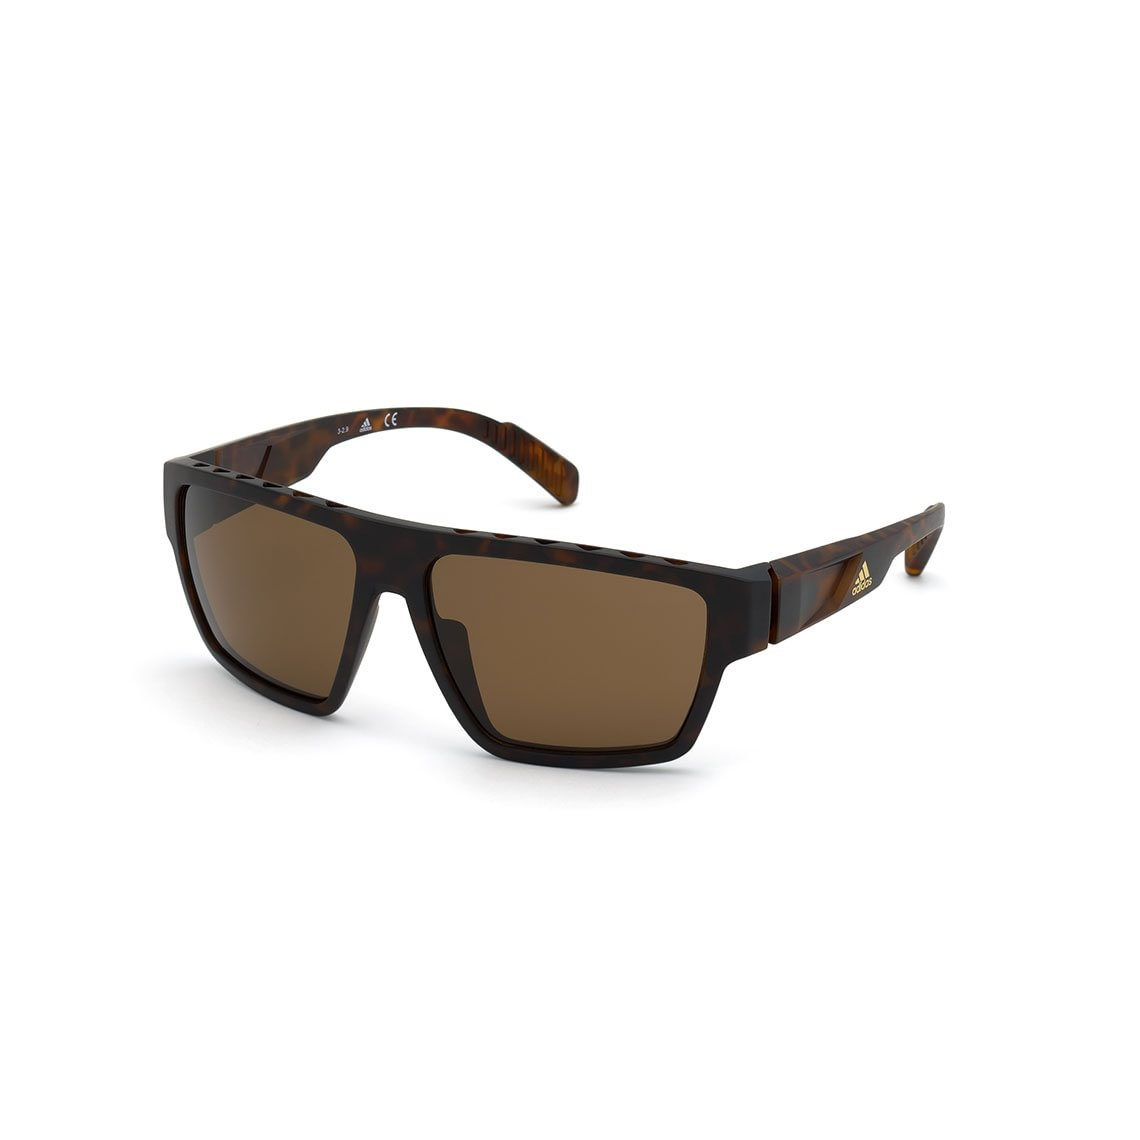 Adidas Sport Brown Polarized SP0008 52H 6115